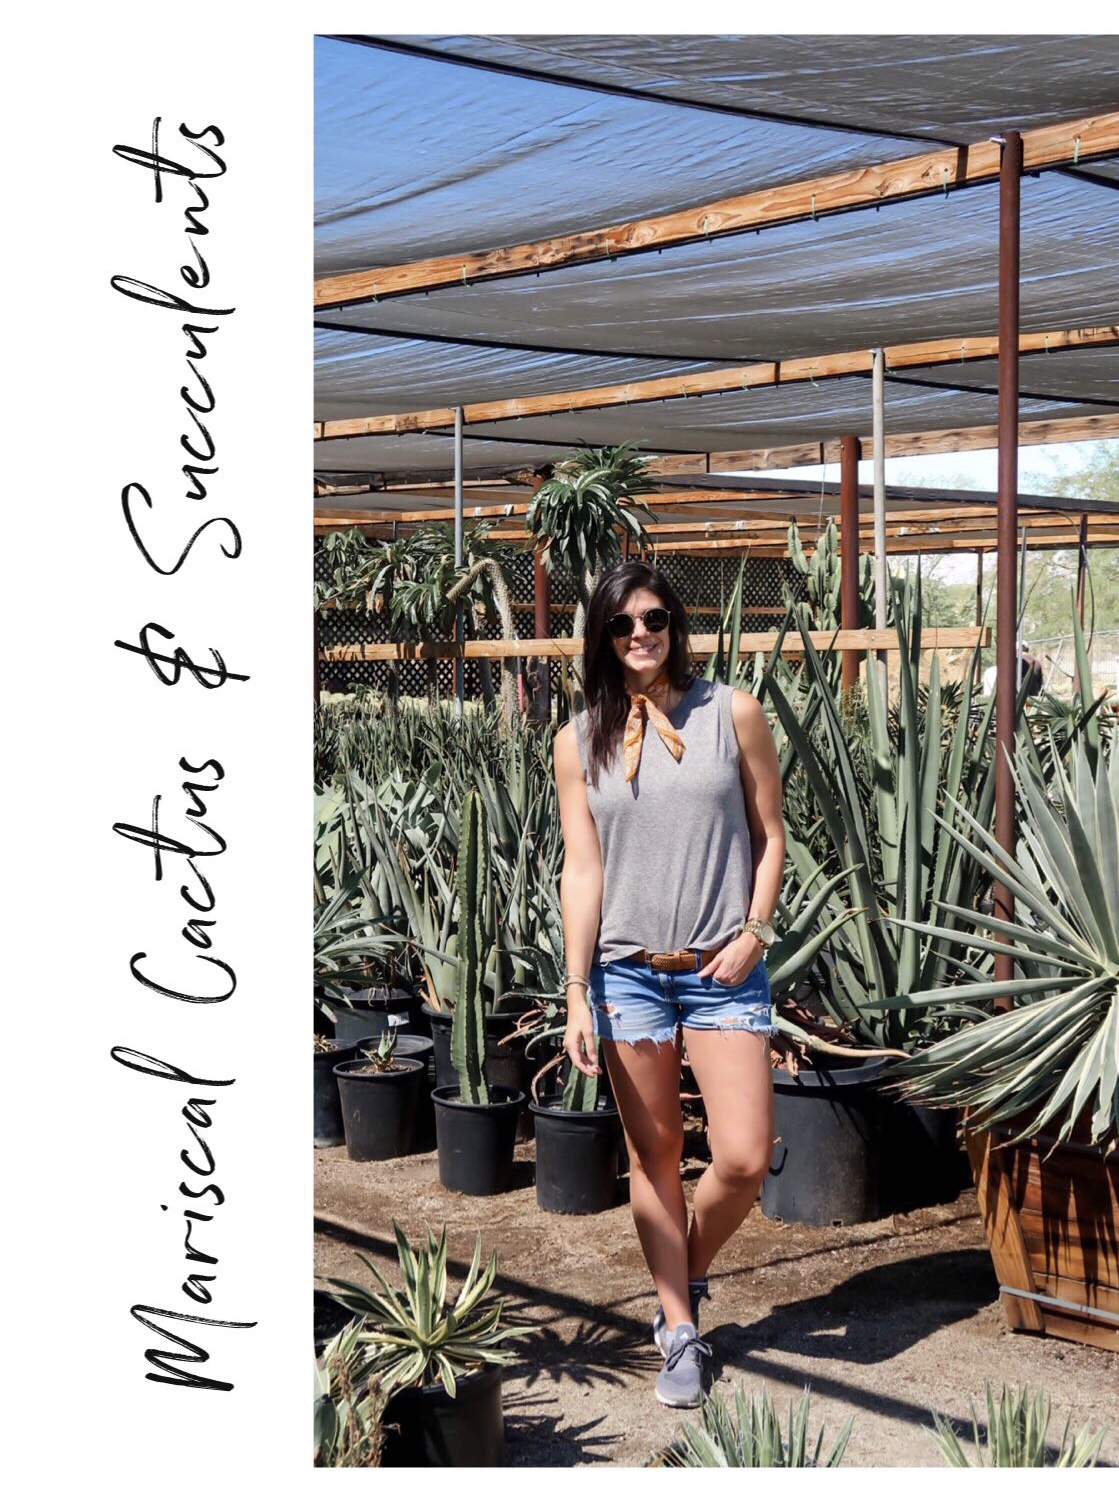 Mariscal Cactus & Succulents - Palm Springs, California - Lauren Schwaiger Travel Blogger